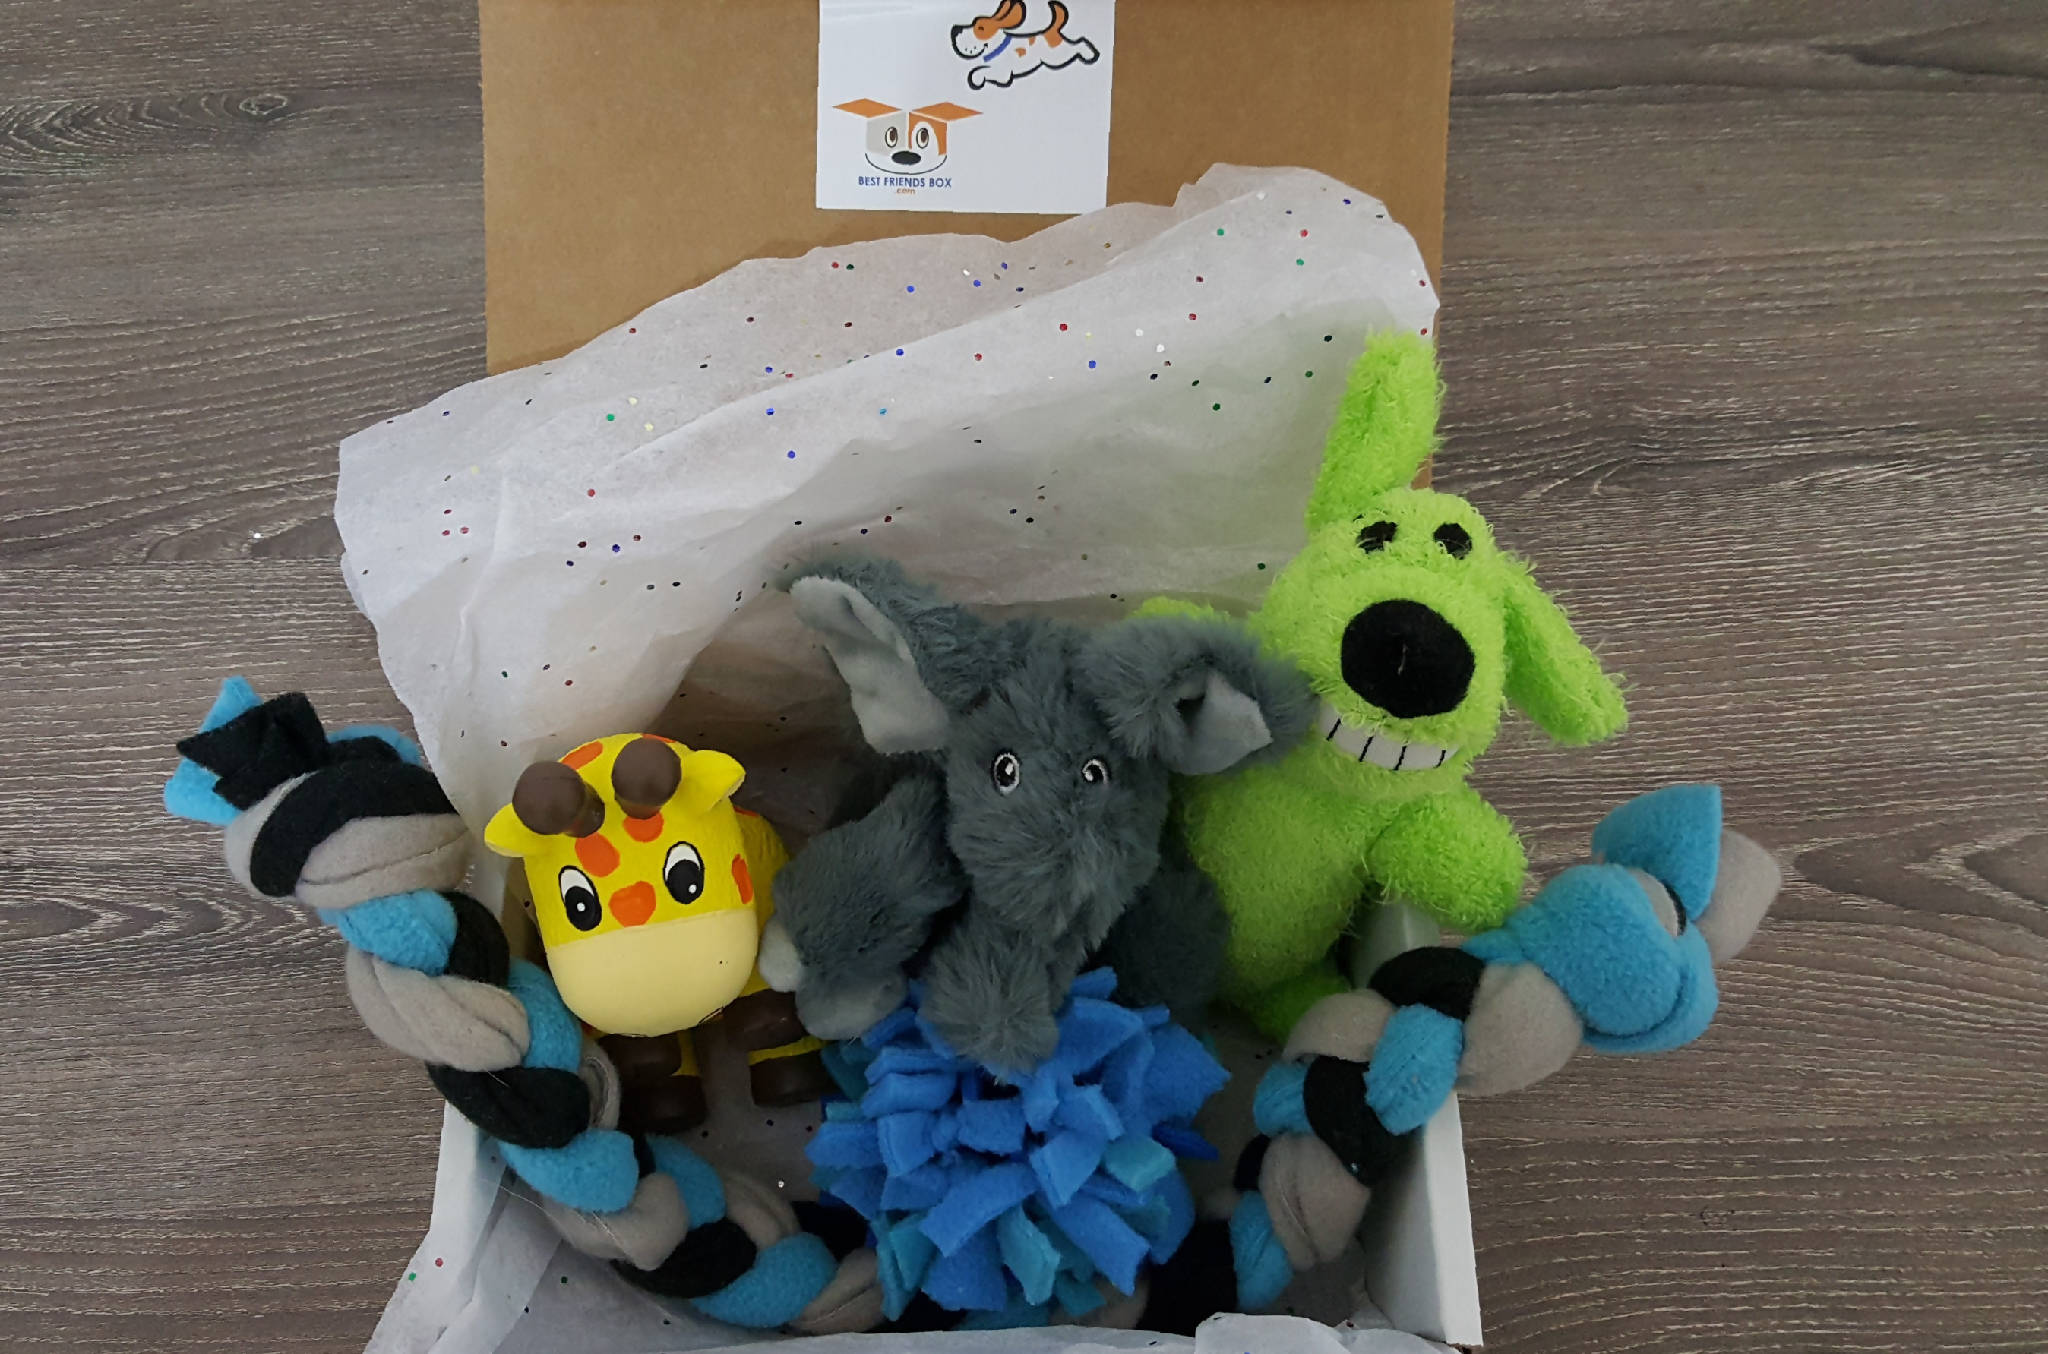 Dog Toys: Gift Box from BestFriendsBox.com - 5 toys!